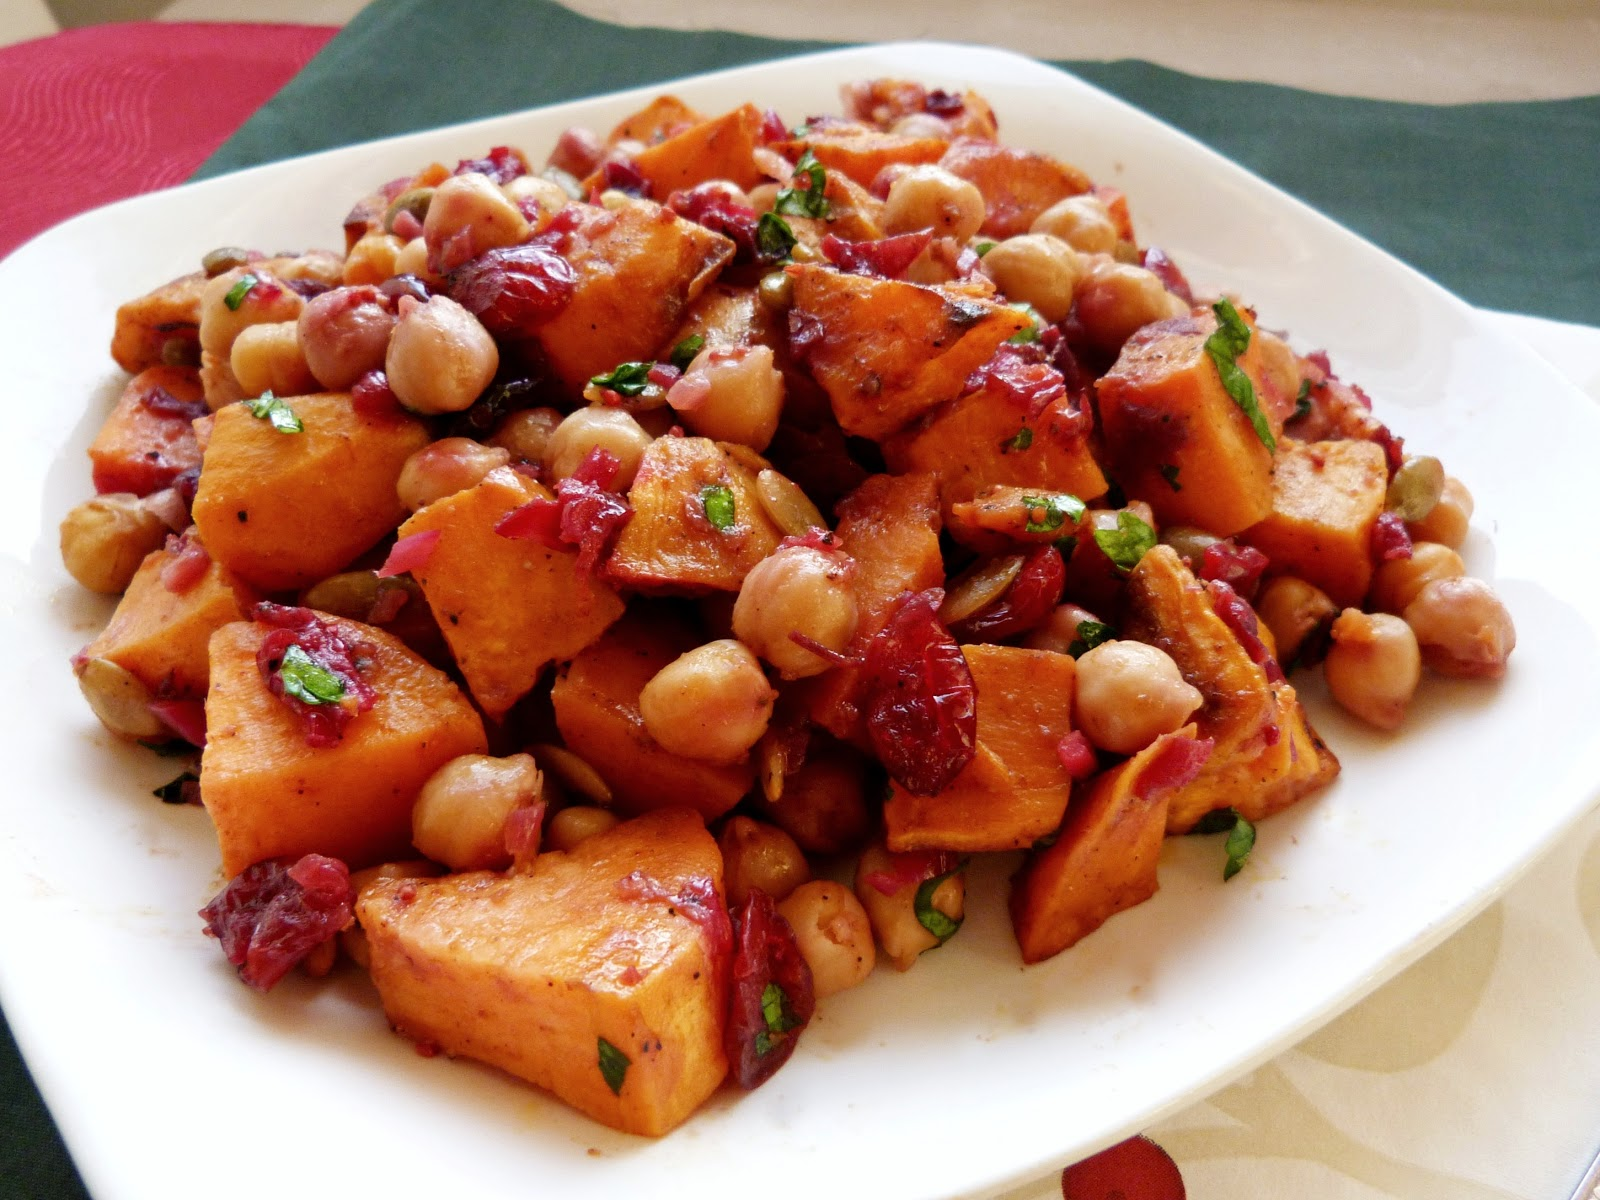 ... Roasted Sweet Potato & Chickpea Salad with Warm Cranberry Chutney